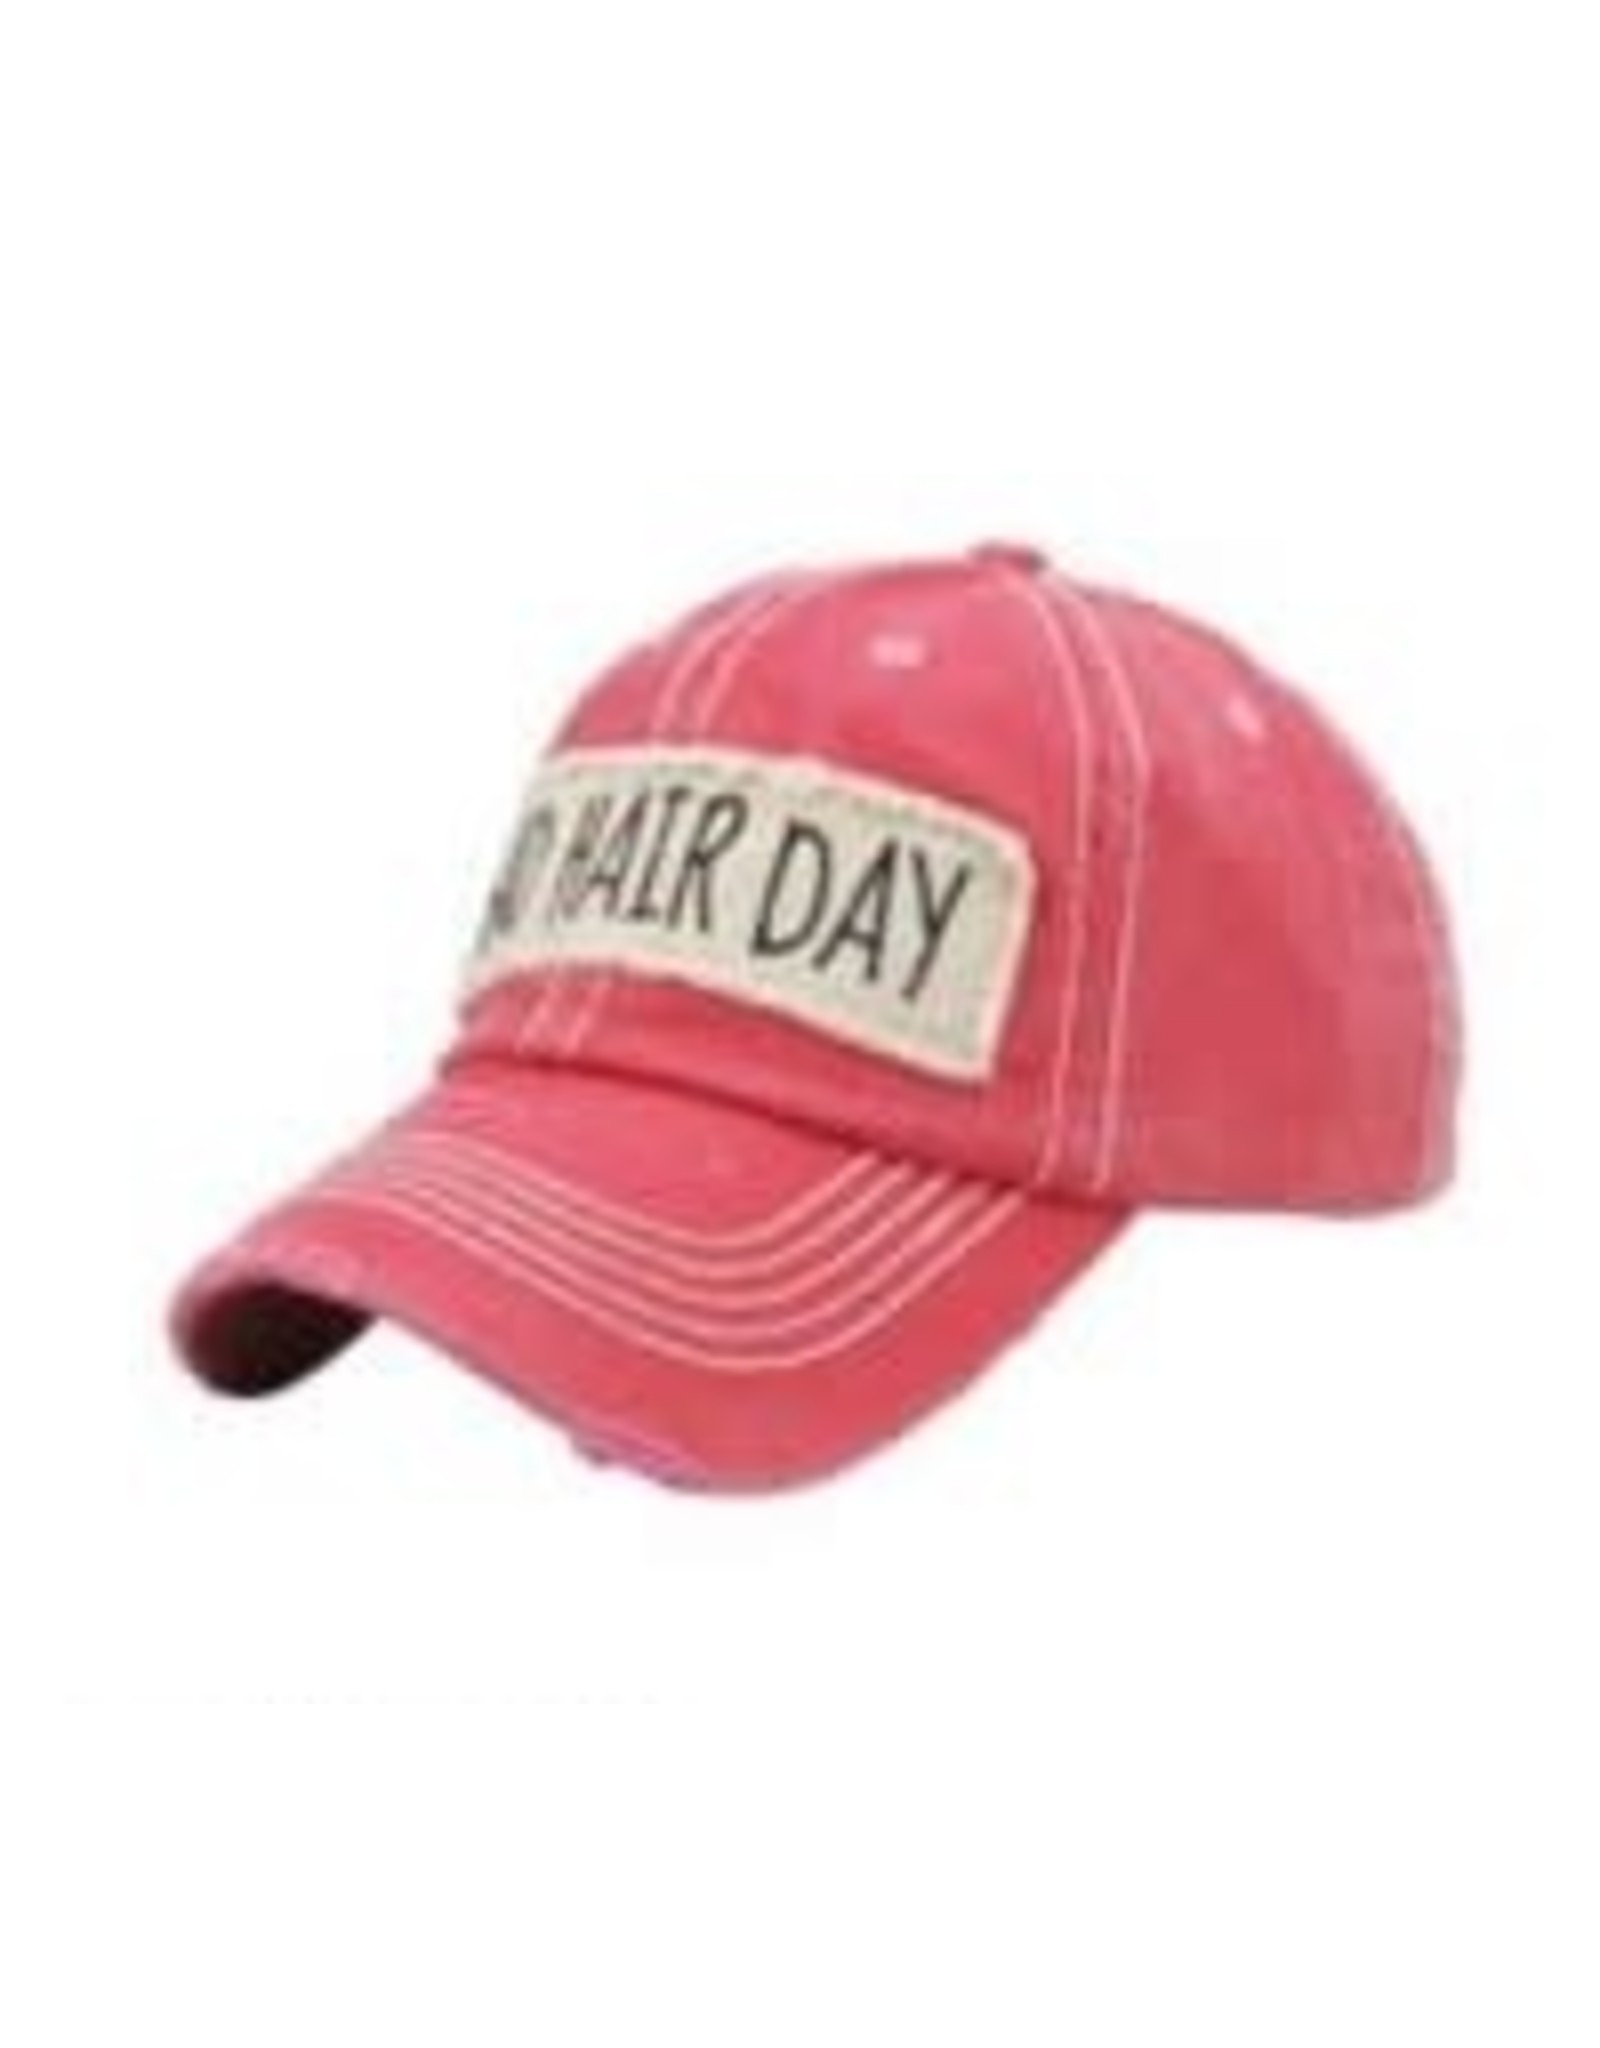 The Chic Bay Chic Hat- Bad Hair Day